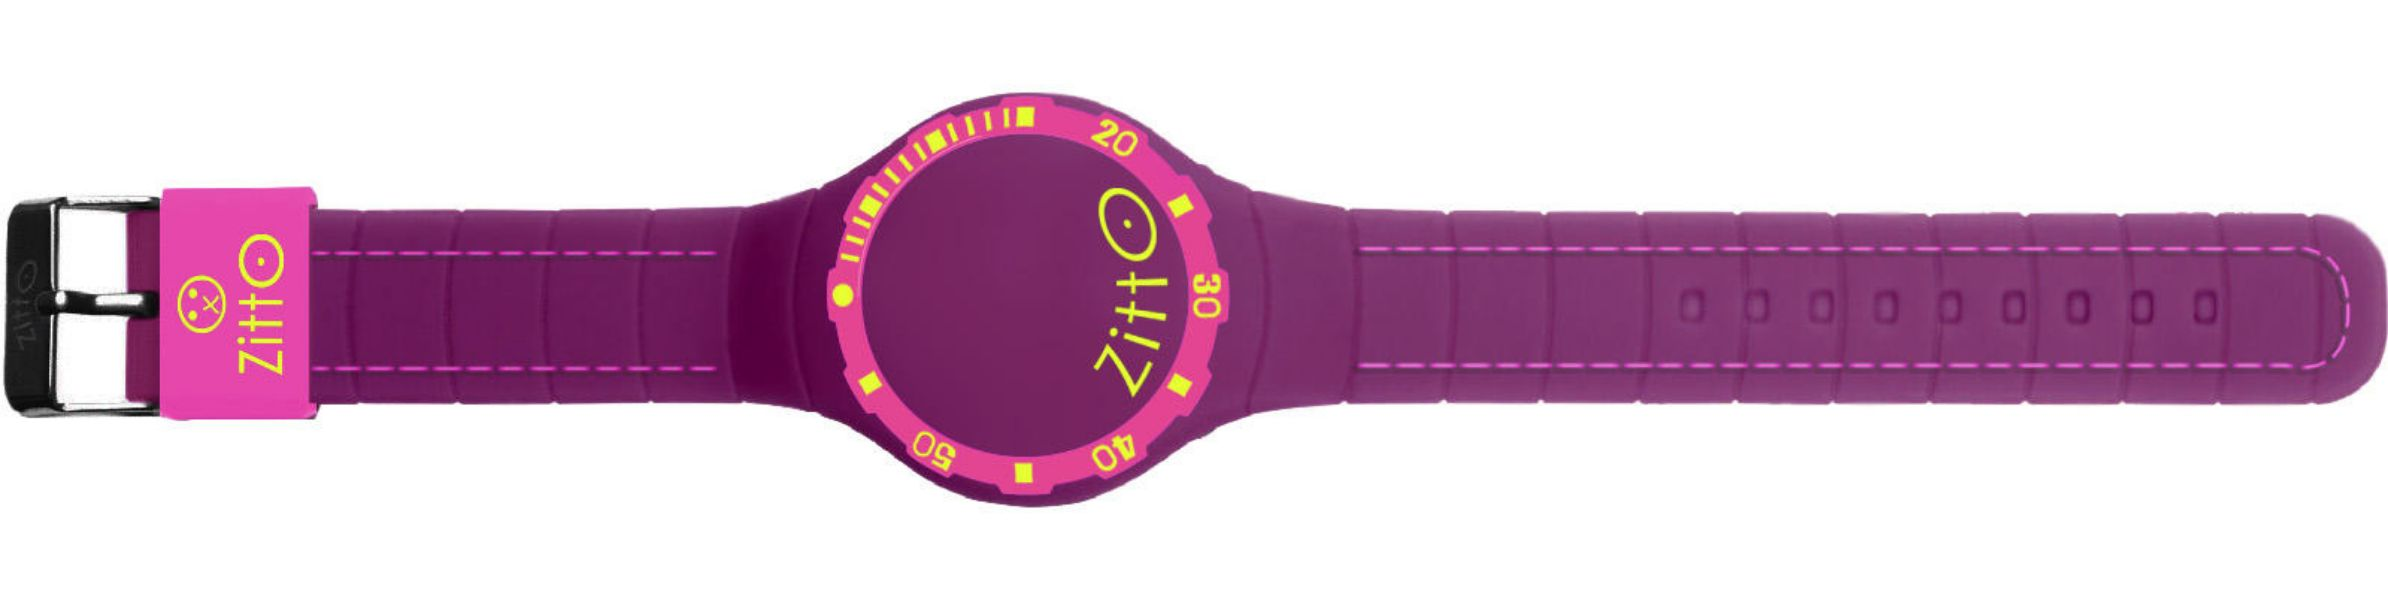 OROLOGIO-36MM-MINI-VIOLA-SOFT-TOUCH-ZITTO